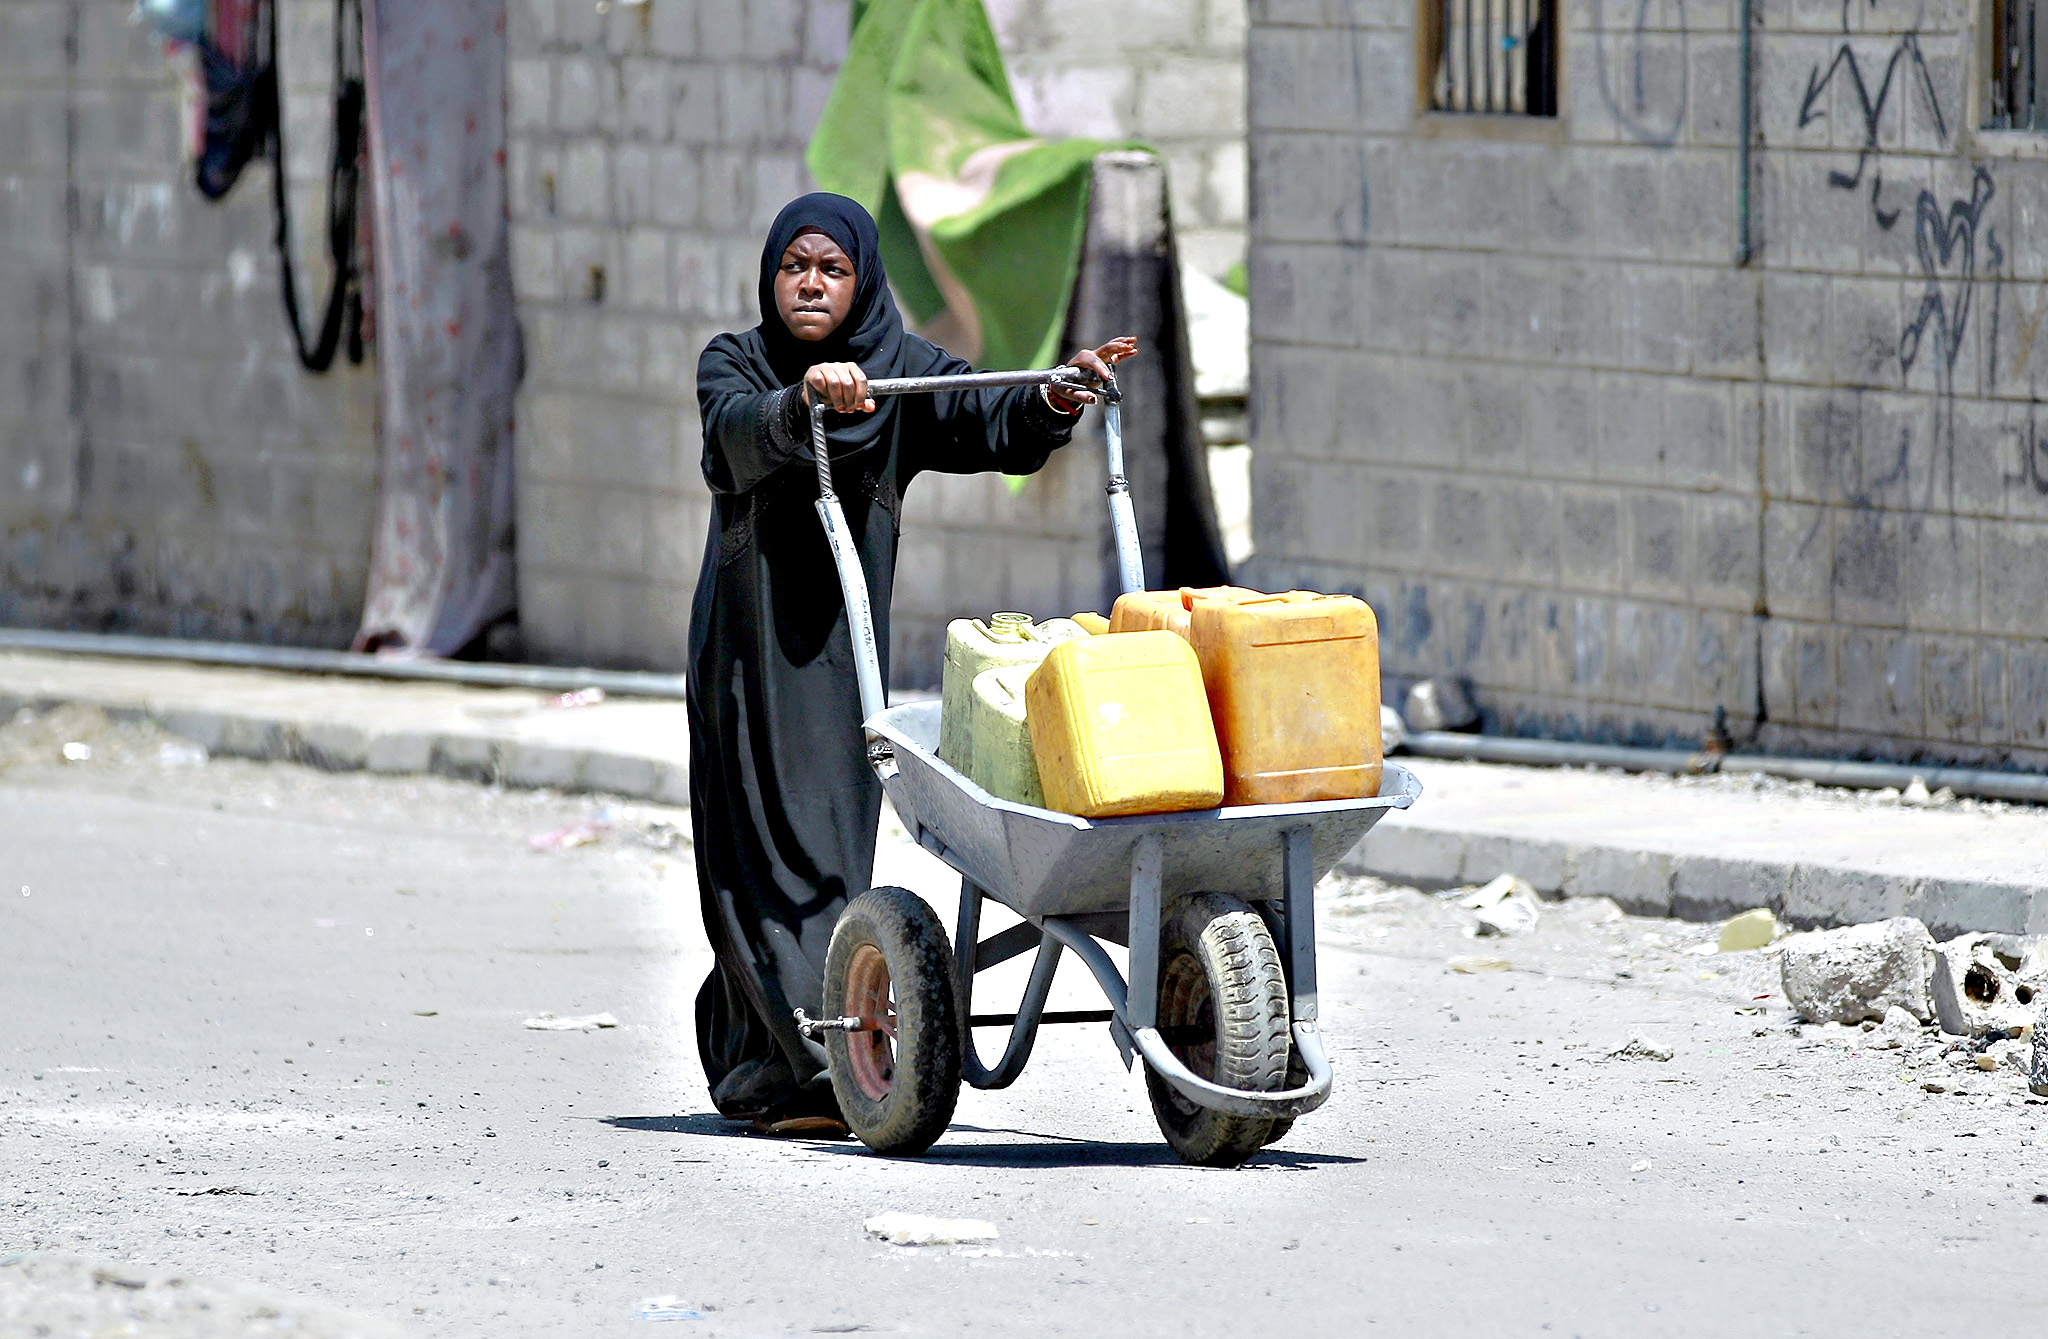 A Yemeni woman carries jerrycans to fill them with water from a public tap amid an acute shortage of water supply to houses in the Yemeni capital, Sanaa on October 8, 2015.